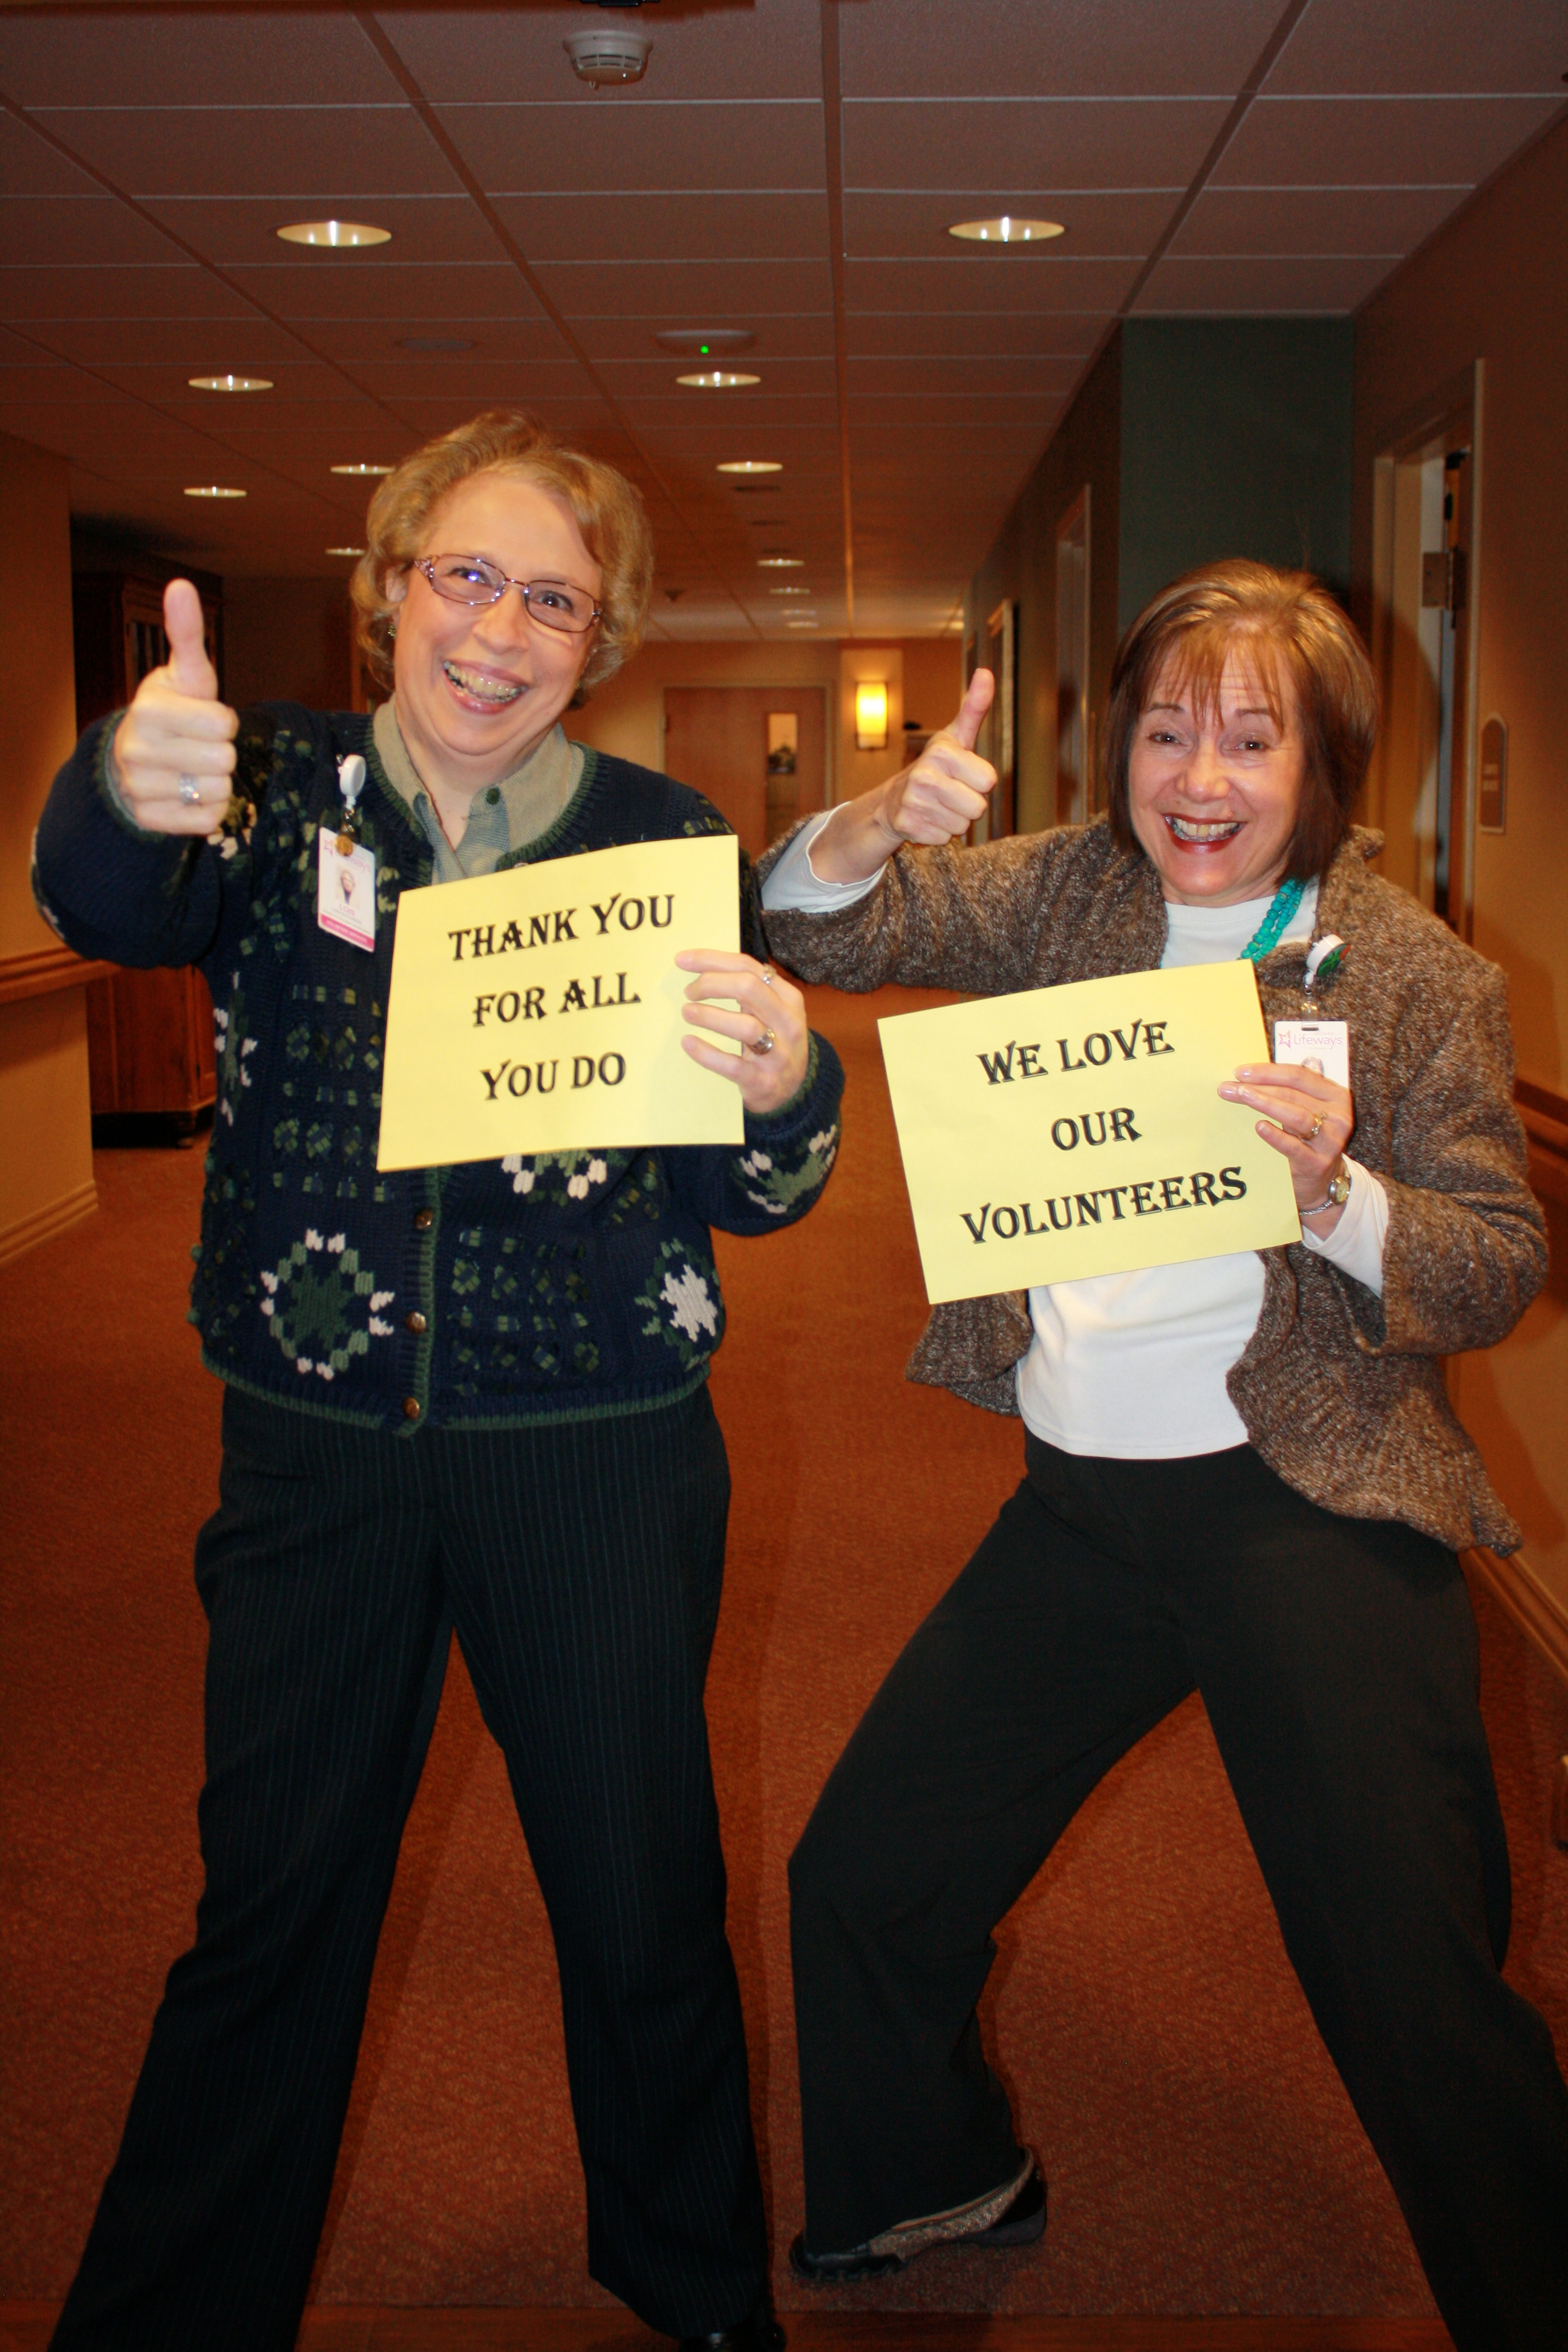 Thanking Volunteers at Retirement Center